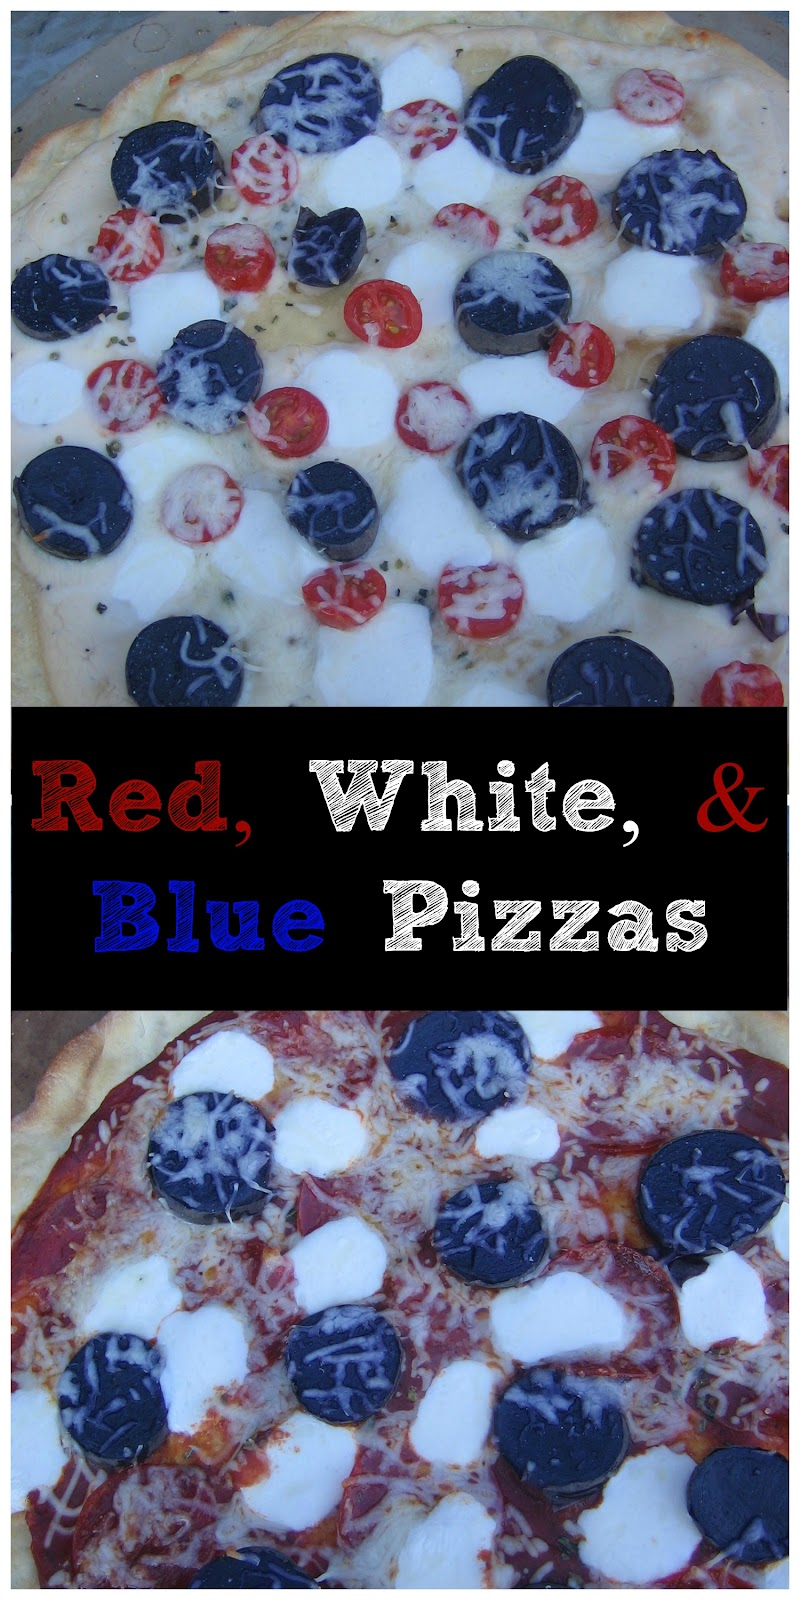 red, white, & blue pizzas